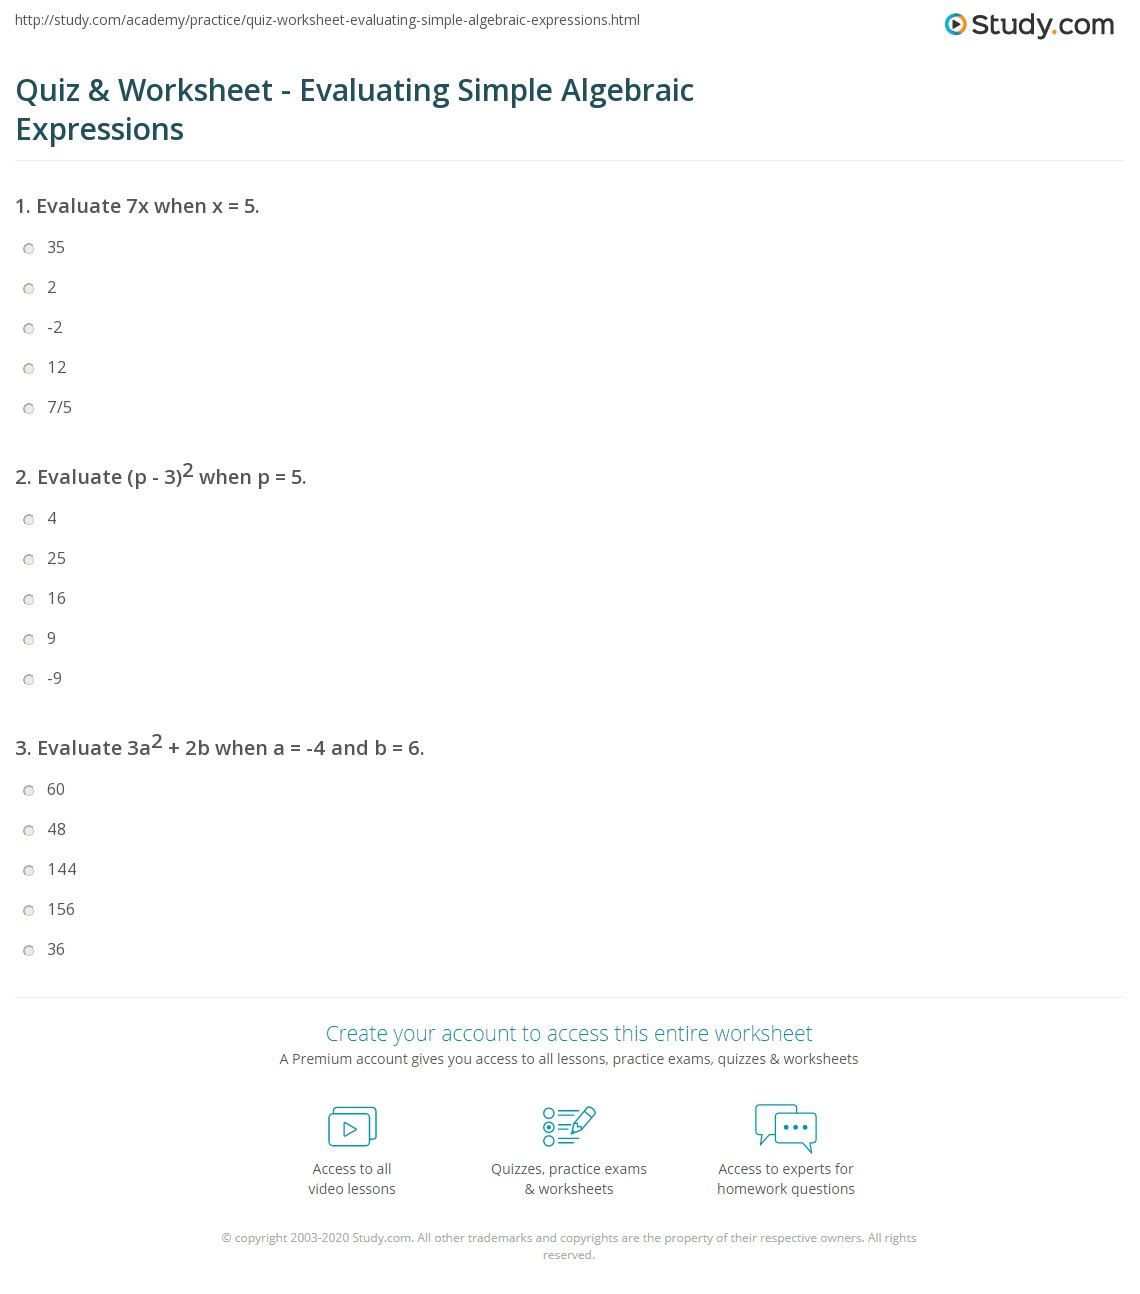 Worksheets Evaluating Expressions Worksheets quiz worksheet evaluating simple algebraic expressions study com print worksheet